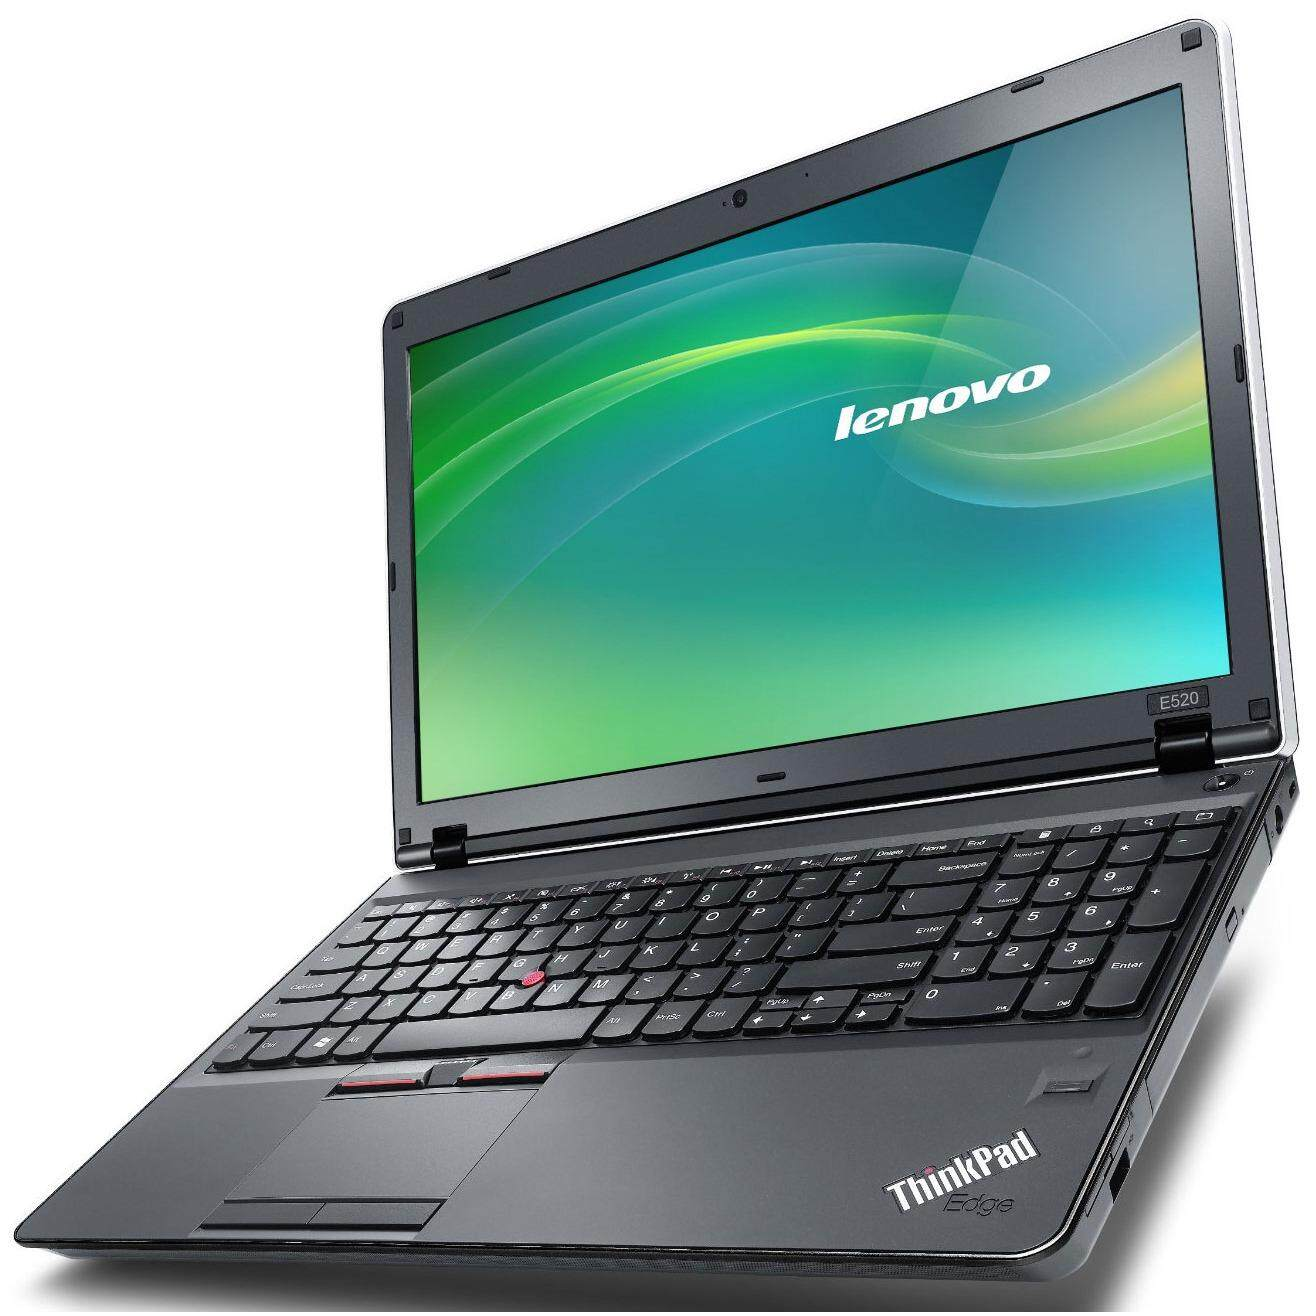 Lenovo ThinkPad Edge E520 1143 - 15.6 - Core i3 2310M - Windows 7 Pro 64-bit - 4 GB RAM - 500 GB Malaysia